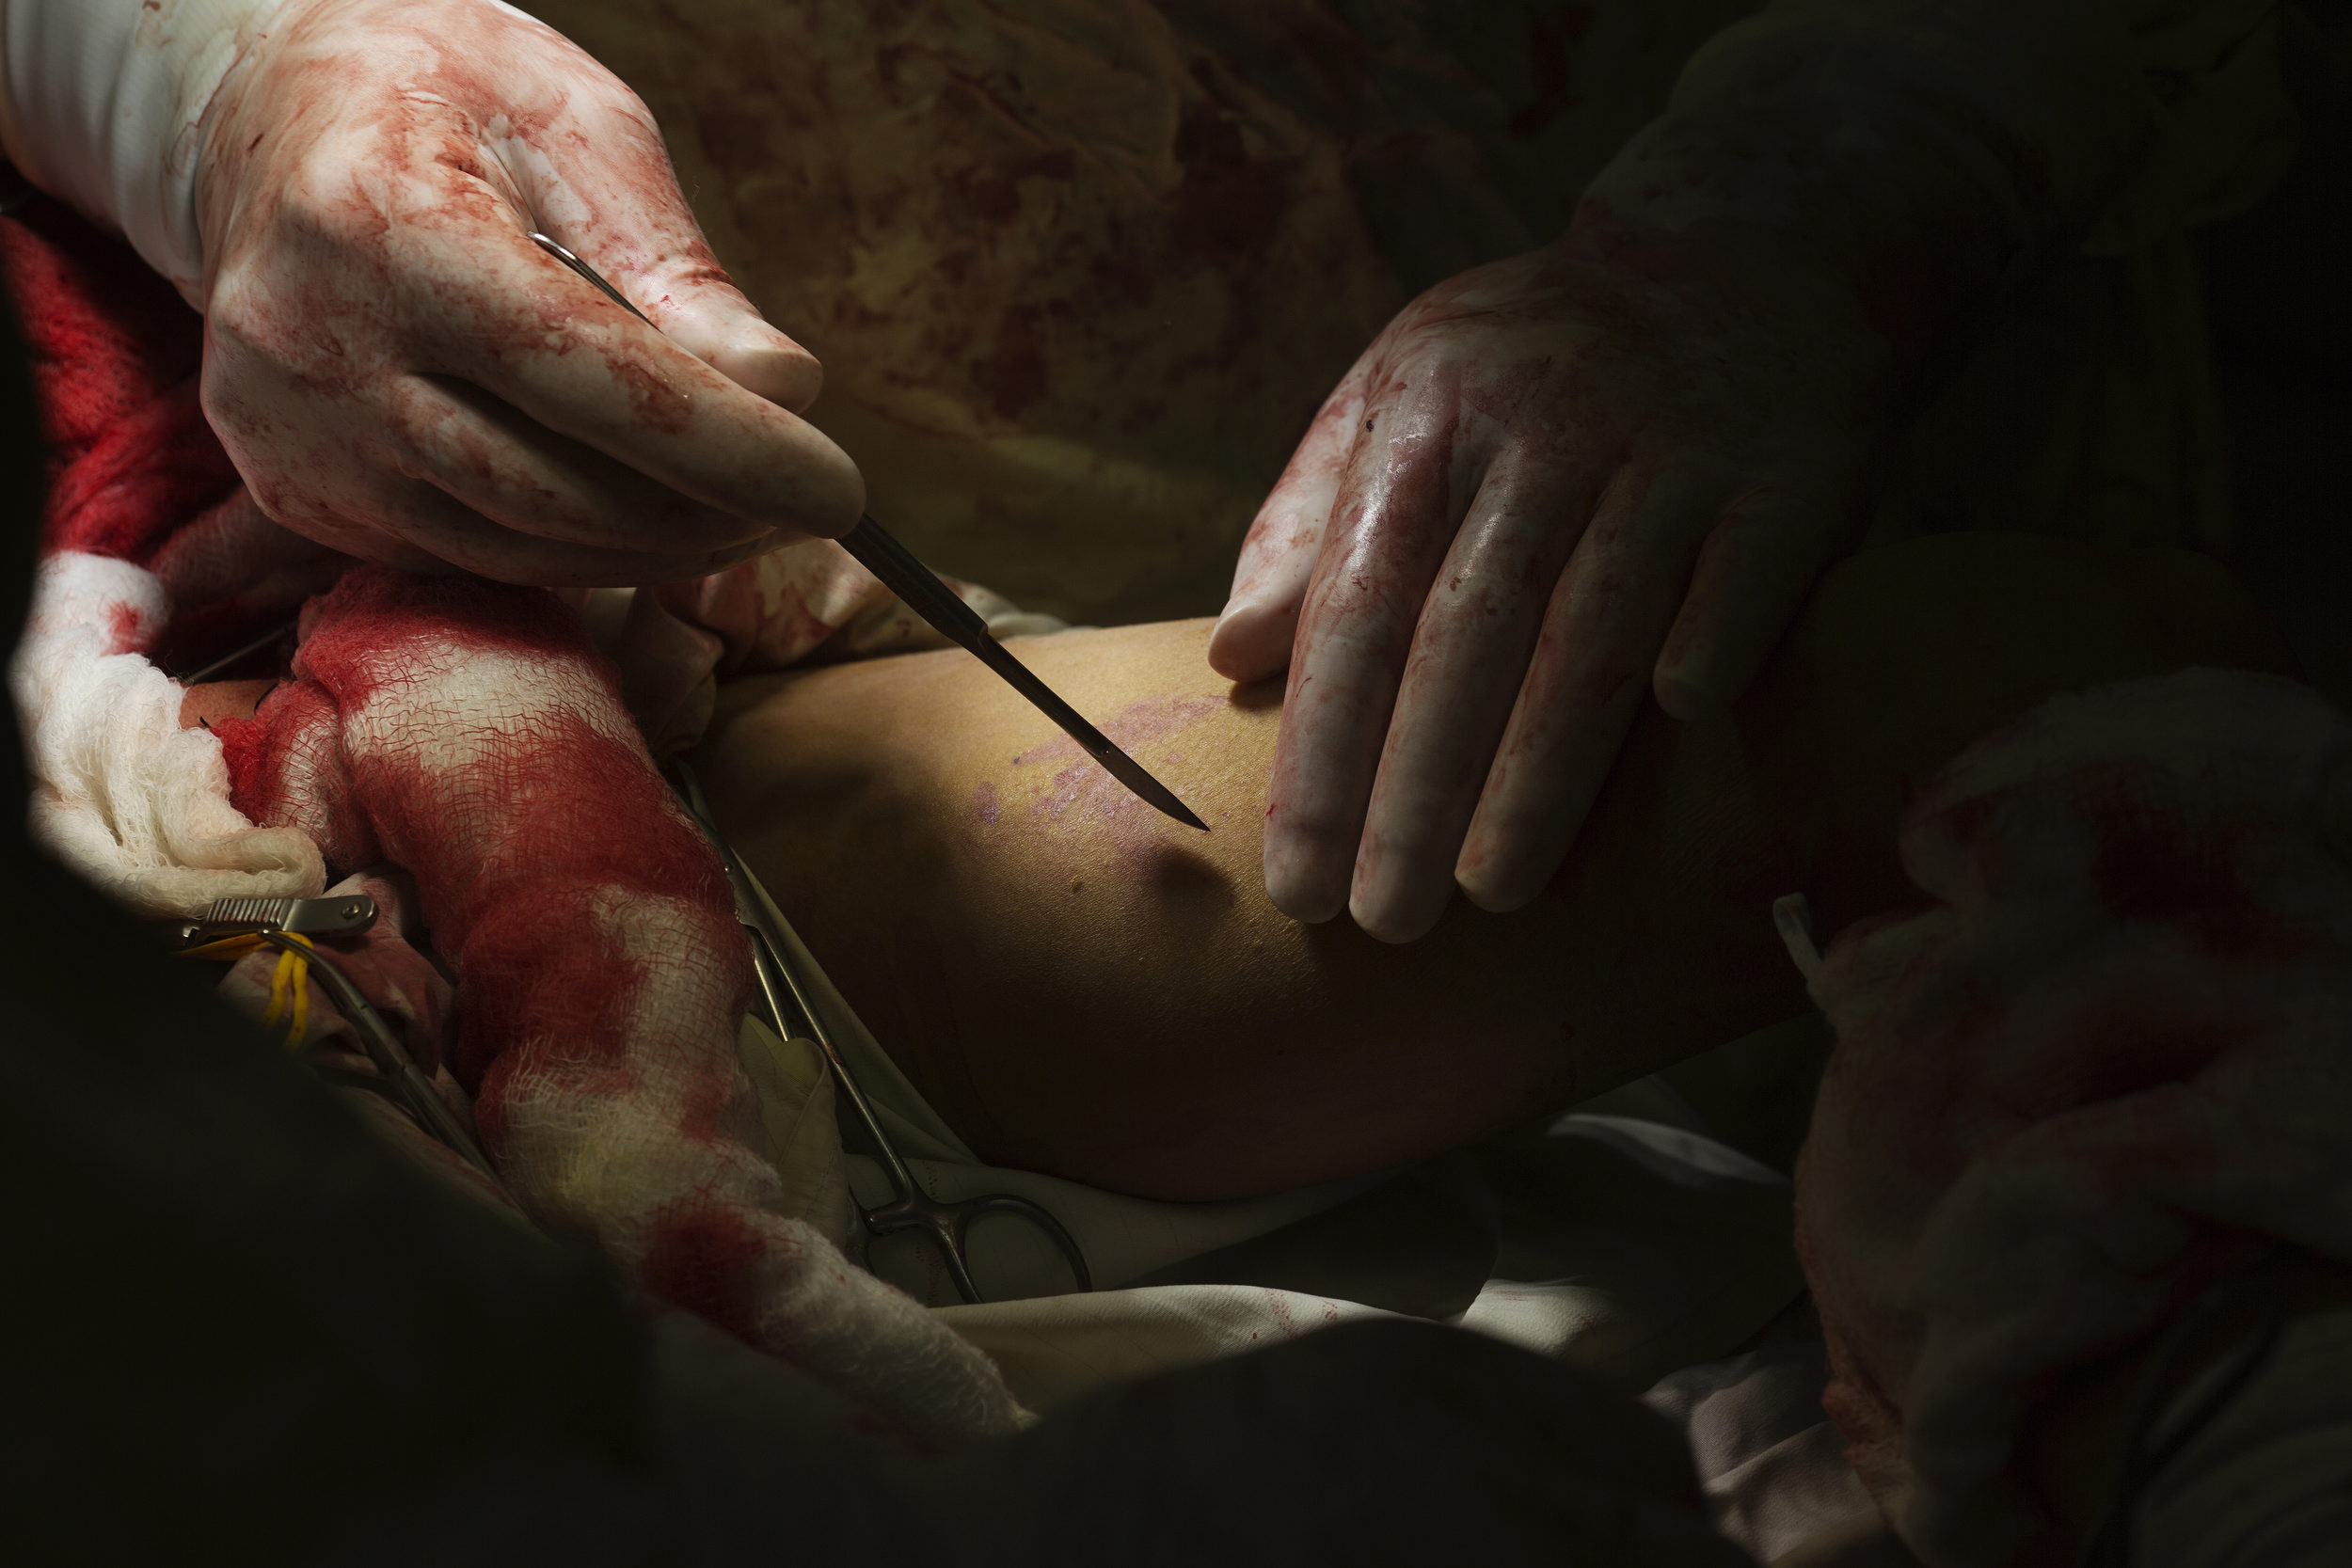 Dr. Shukur Sardar prepares to open the thigh of Jan Mohammed, 10, to extract a vein for a vascular graft, after he suffered multiple blast injuries from an unexploded munition.